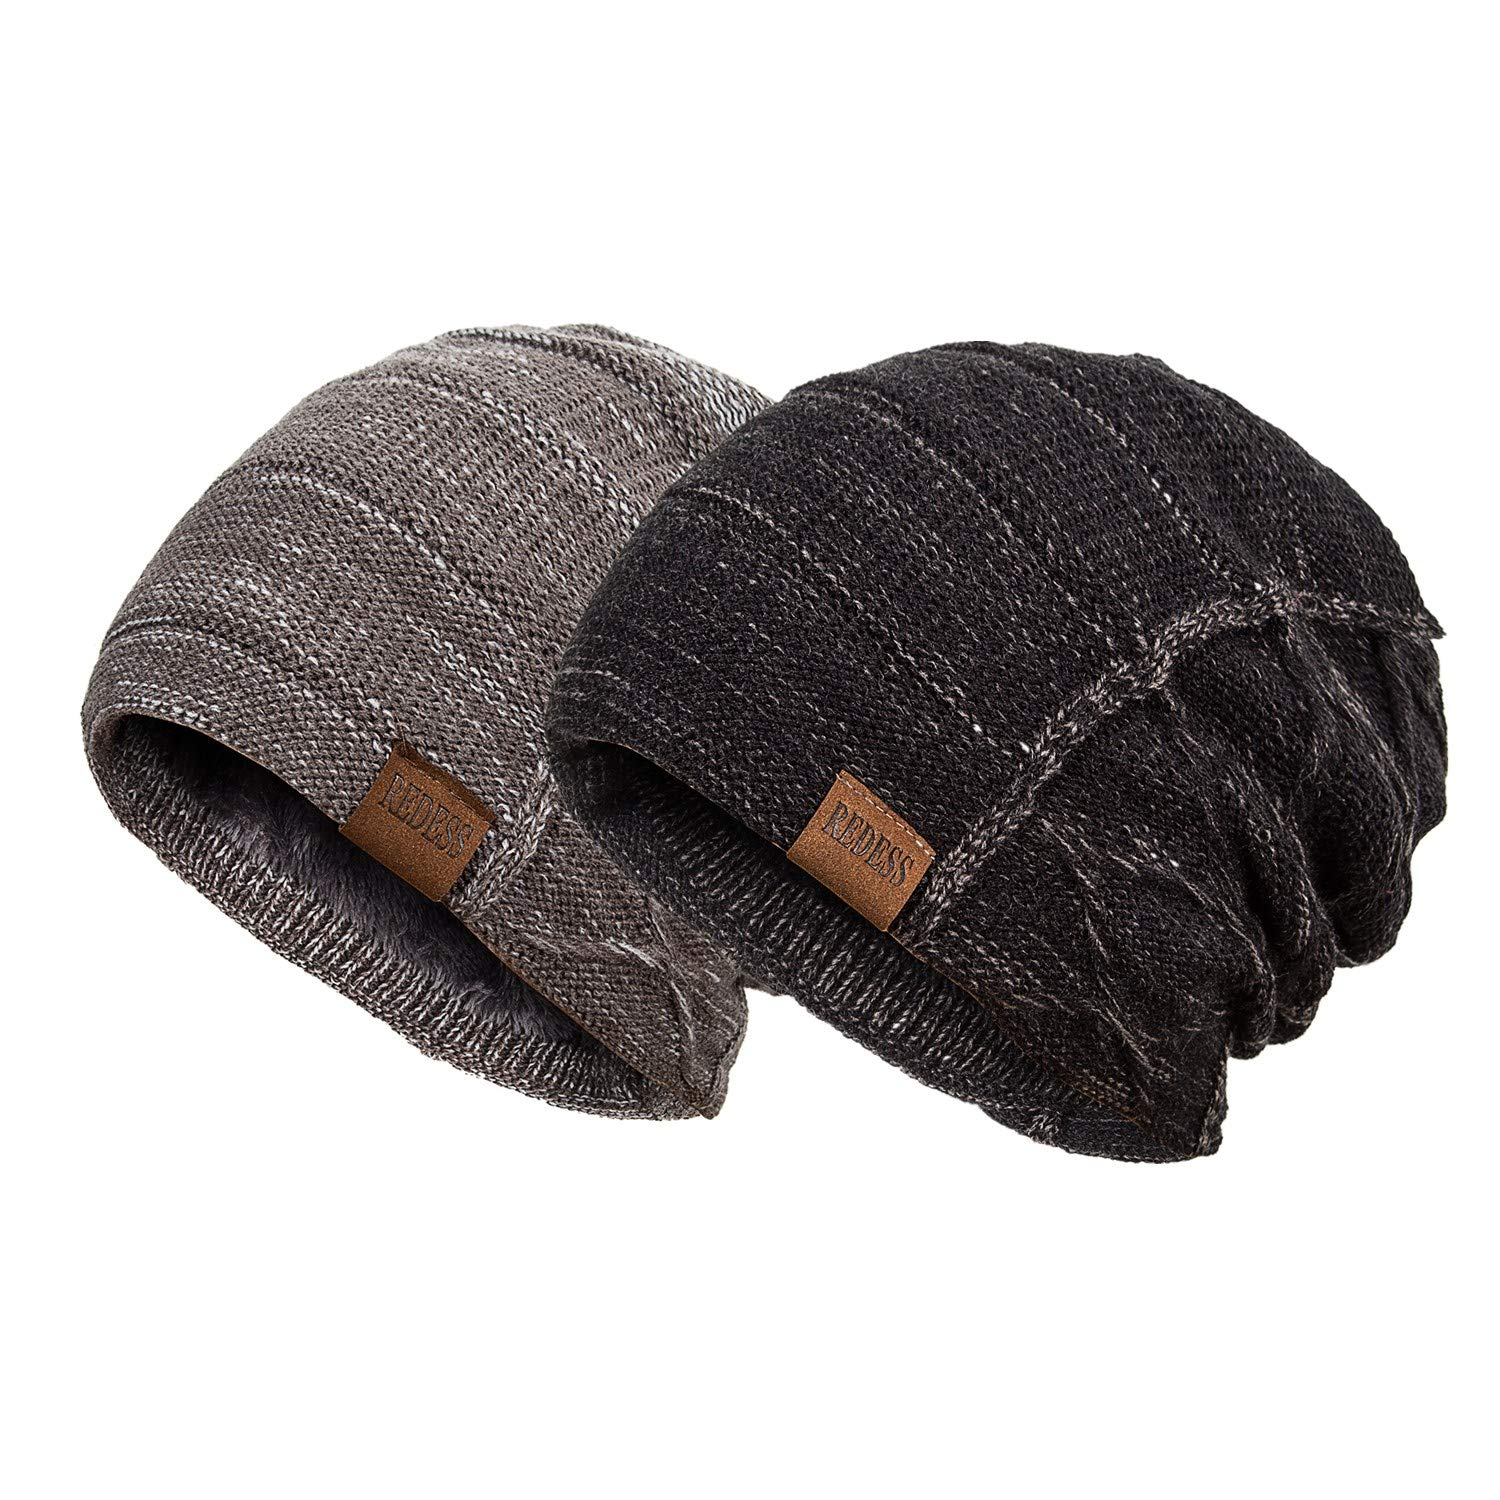 a03613e134b REDESS Beanie Hat for Men and Women Winter Warm Hats Knit Slouchy Thick  Skull Cap